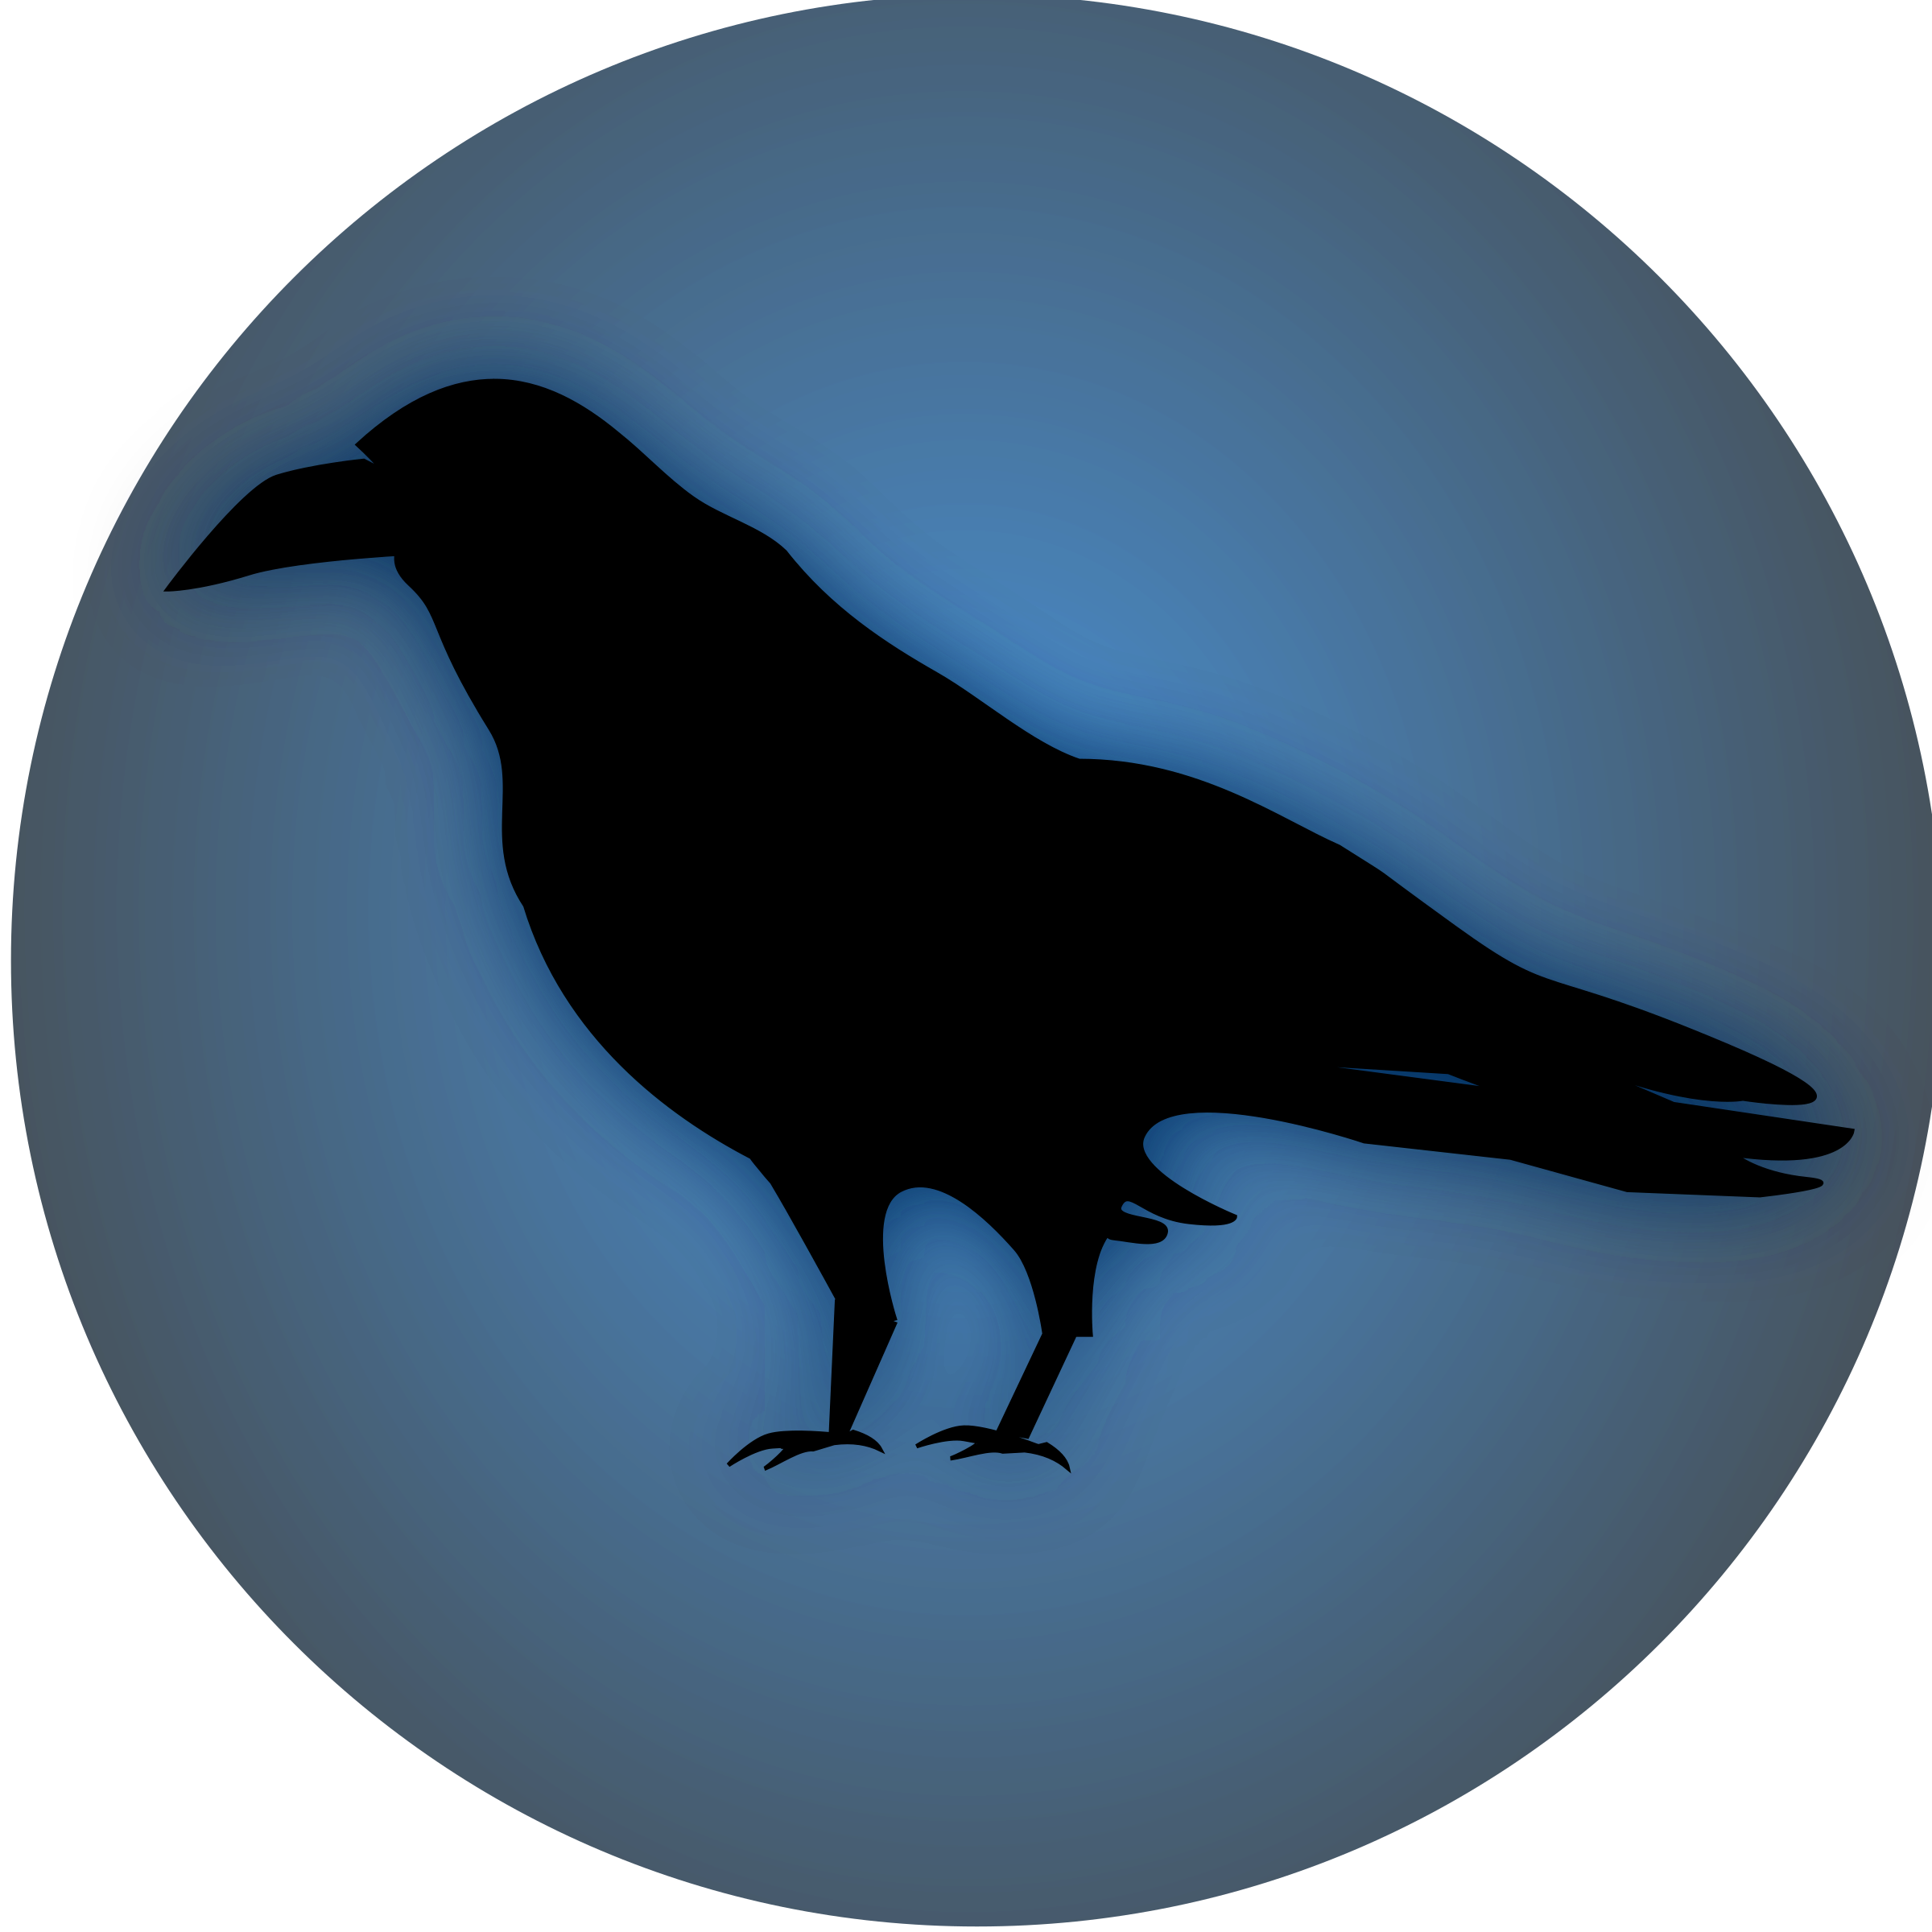 Raven in tree clipart image stock Clipart - raven icon image stock